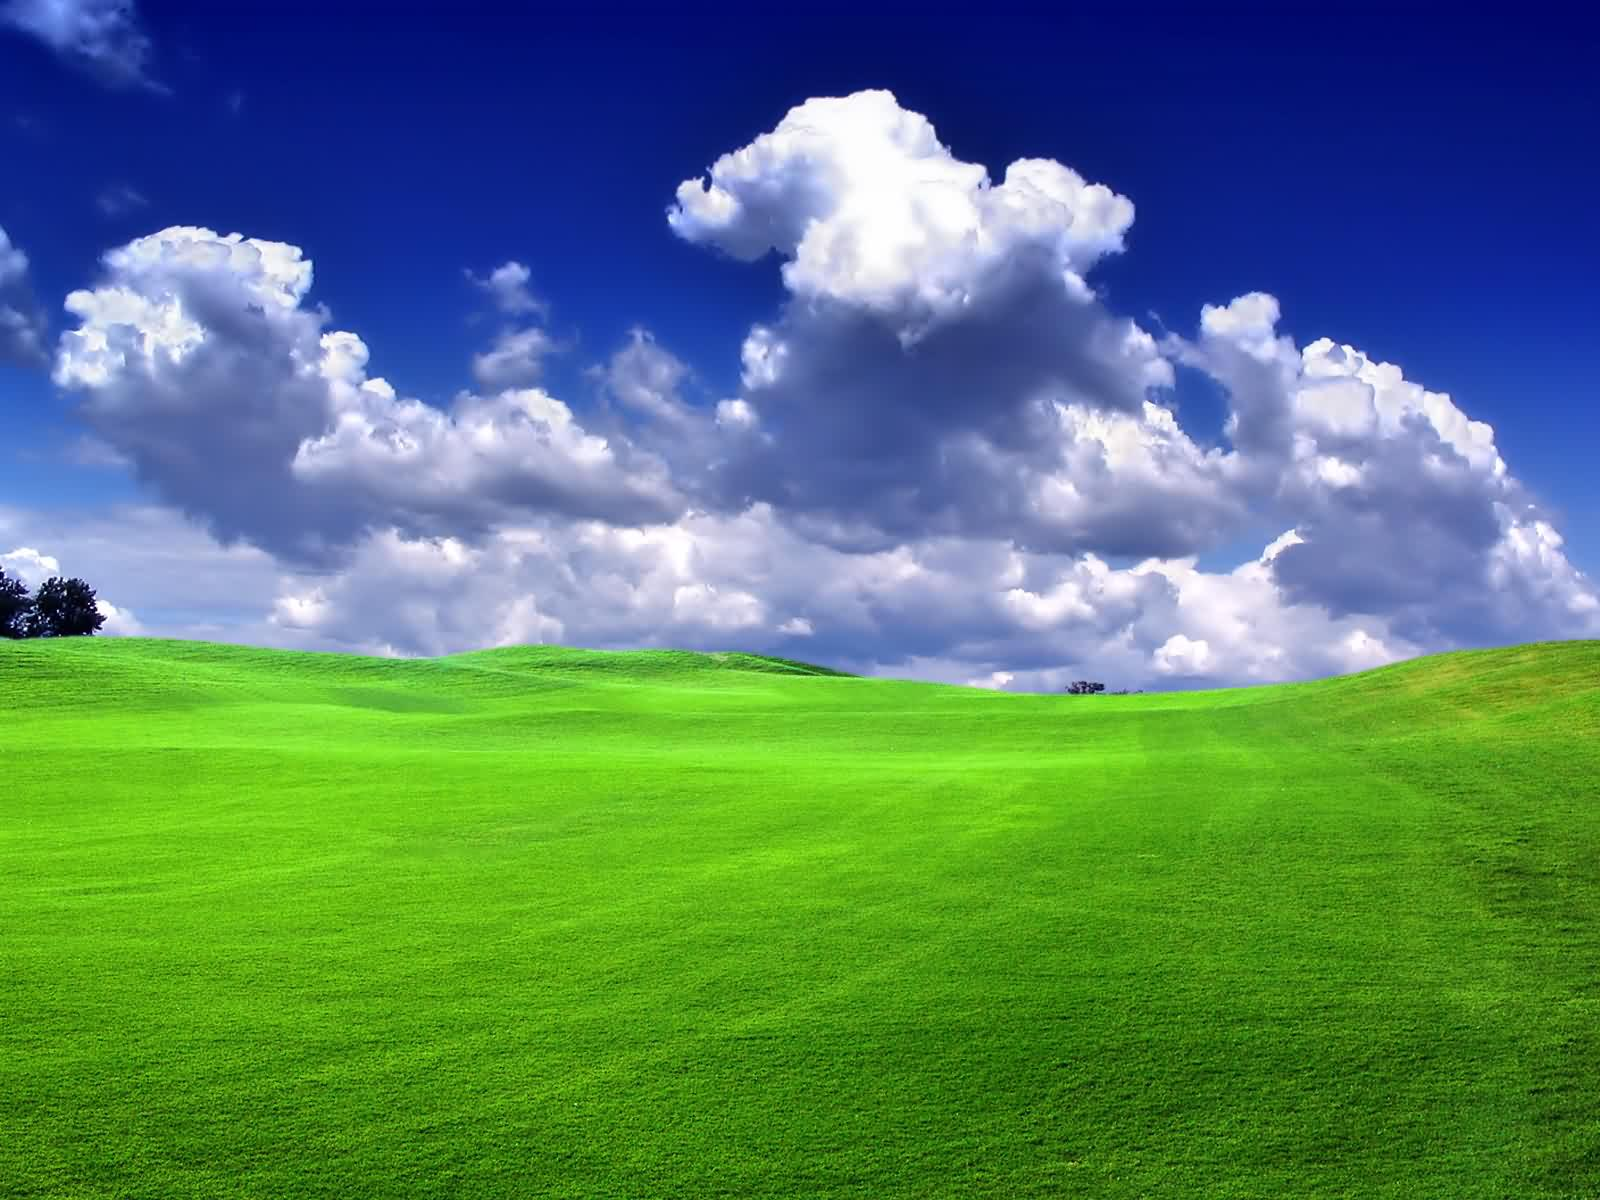 Nature Wallpapers|Nature HD Wallpapers|3D Nature Wallpapers